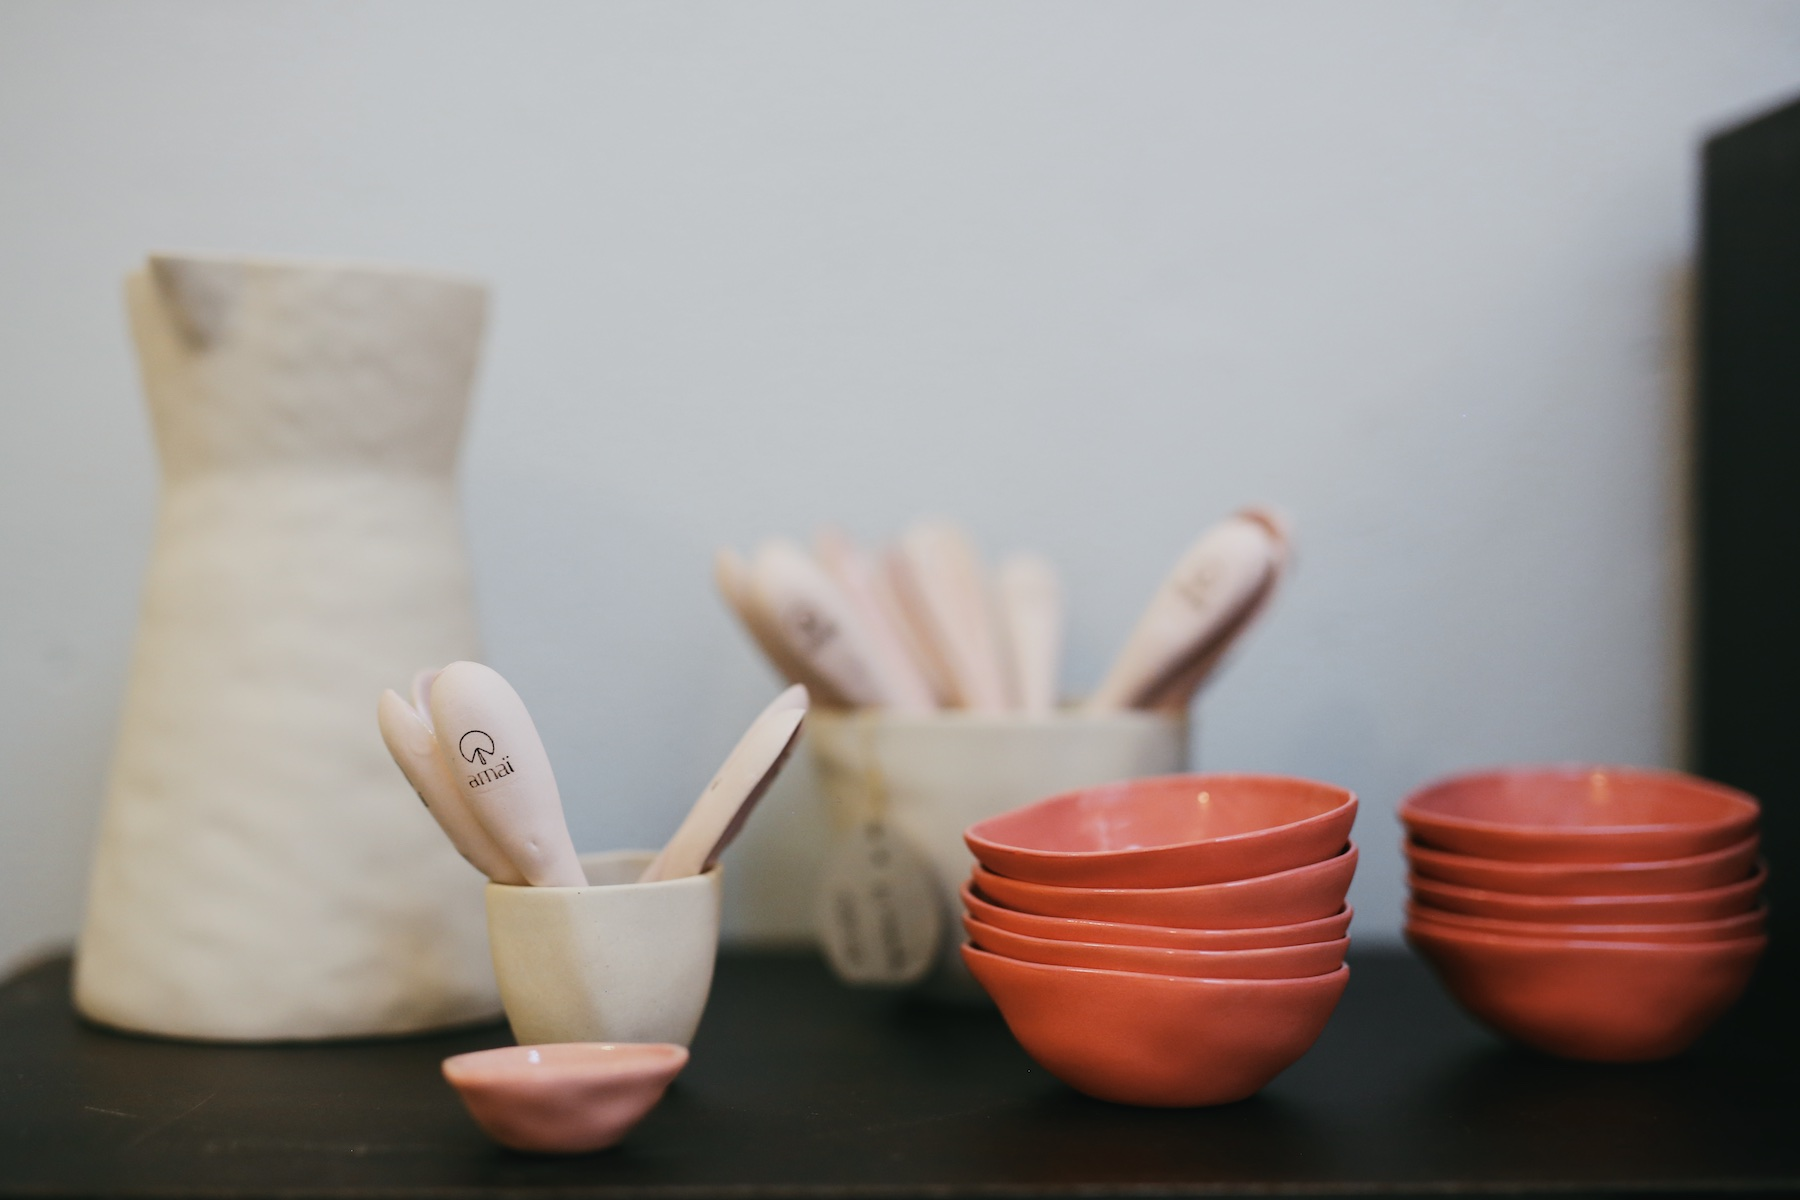 Export of Vietnamese ceramic products continues to grow